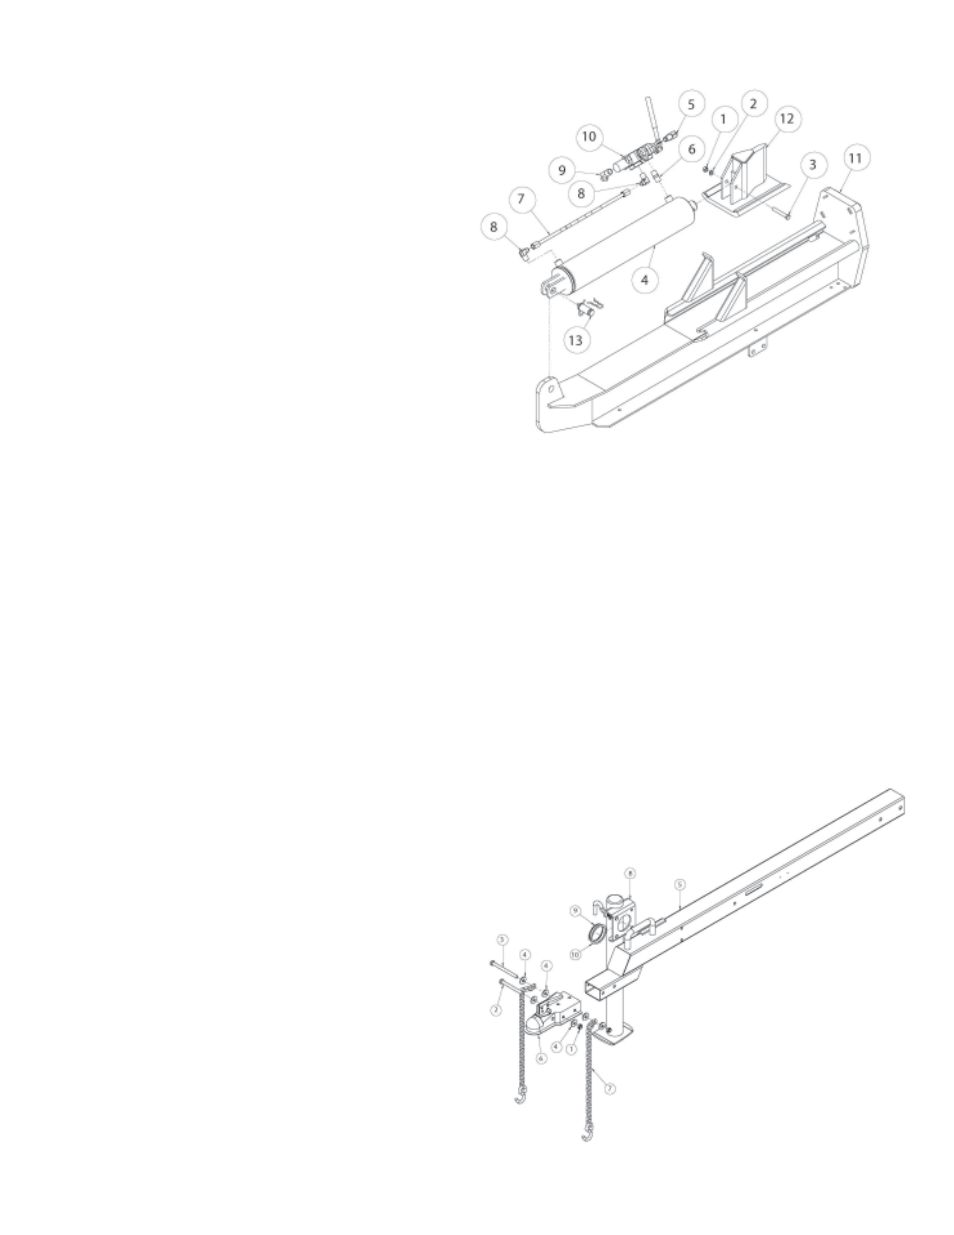 Speeco 401625UB User Manual | Page 13 / 17